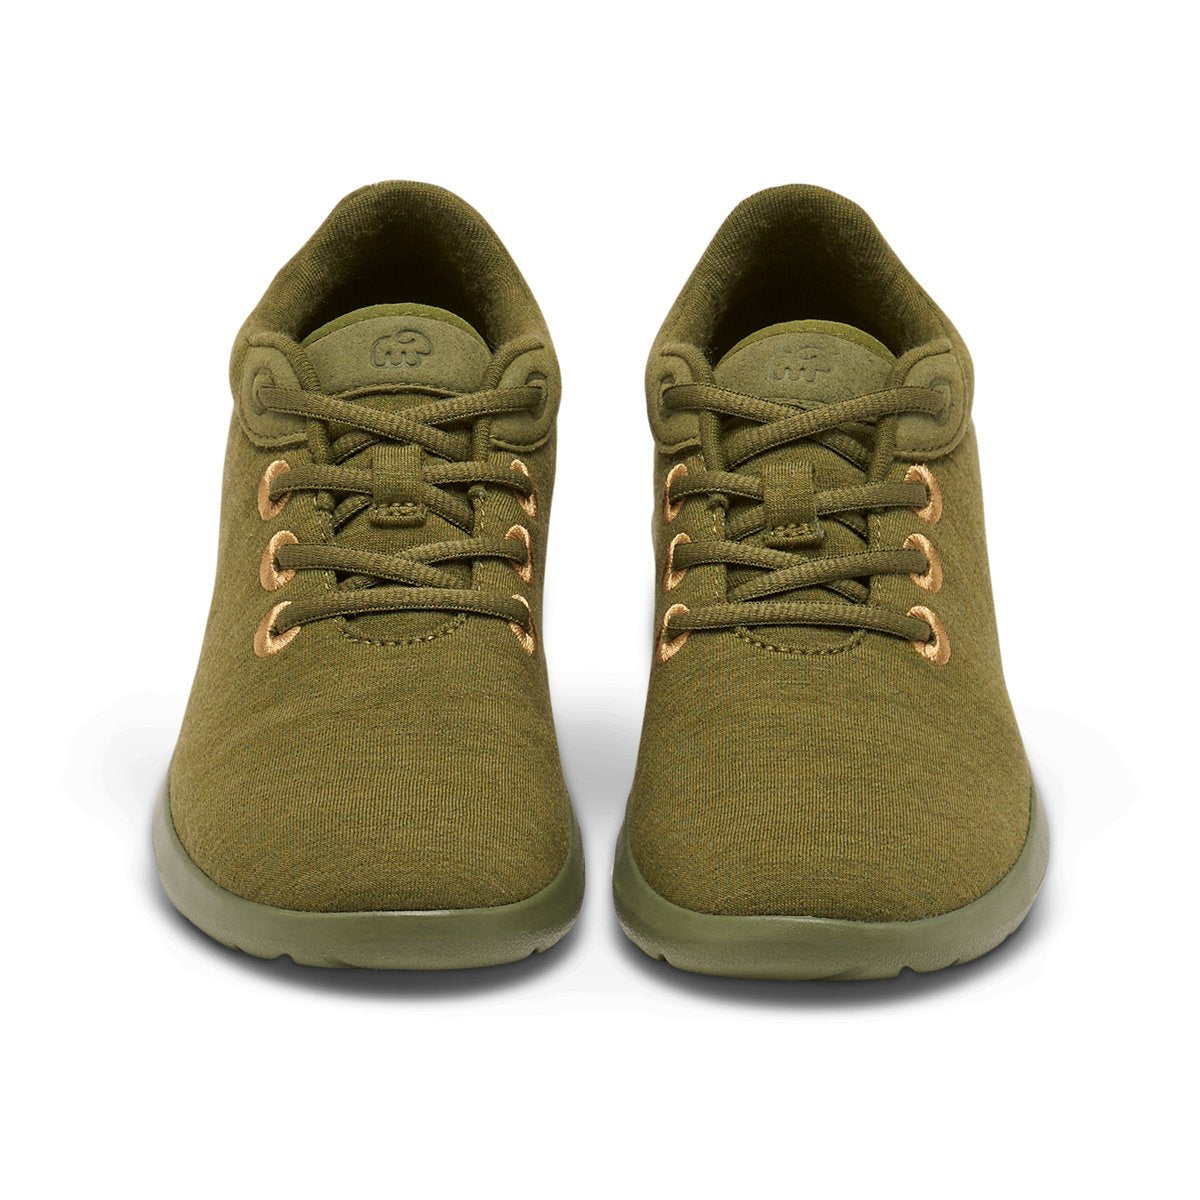 Women's Lace-Ups Olive Green